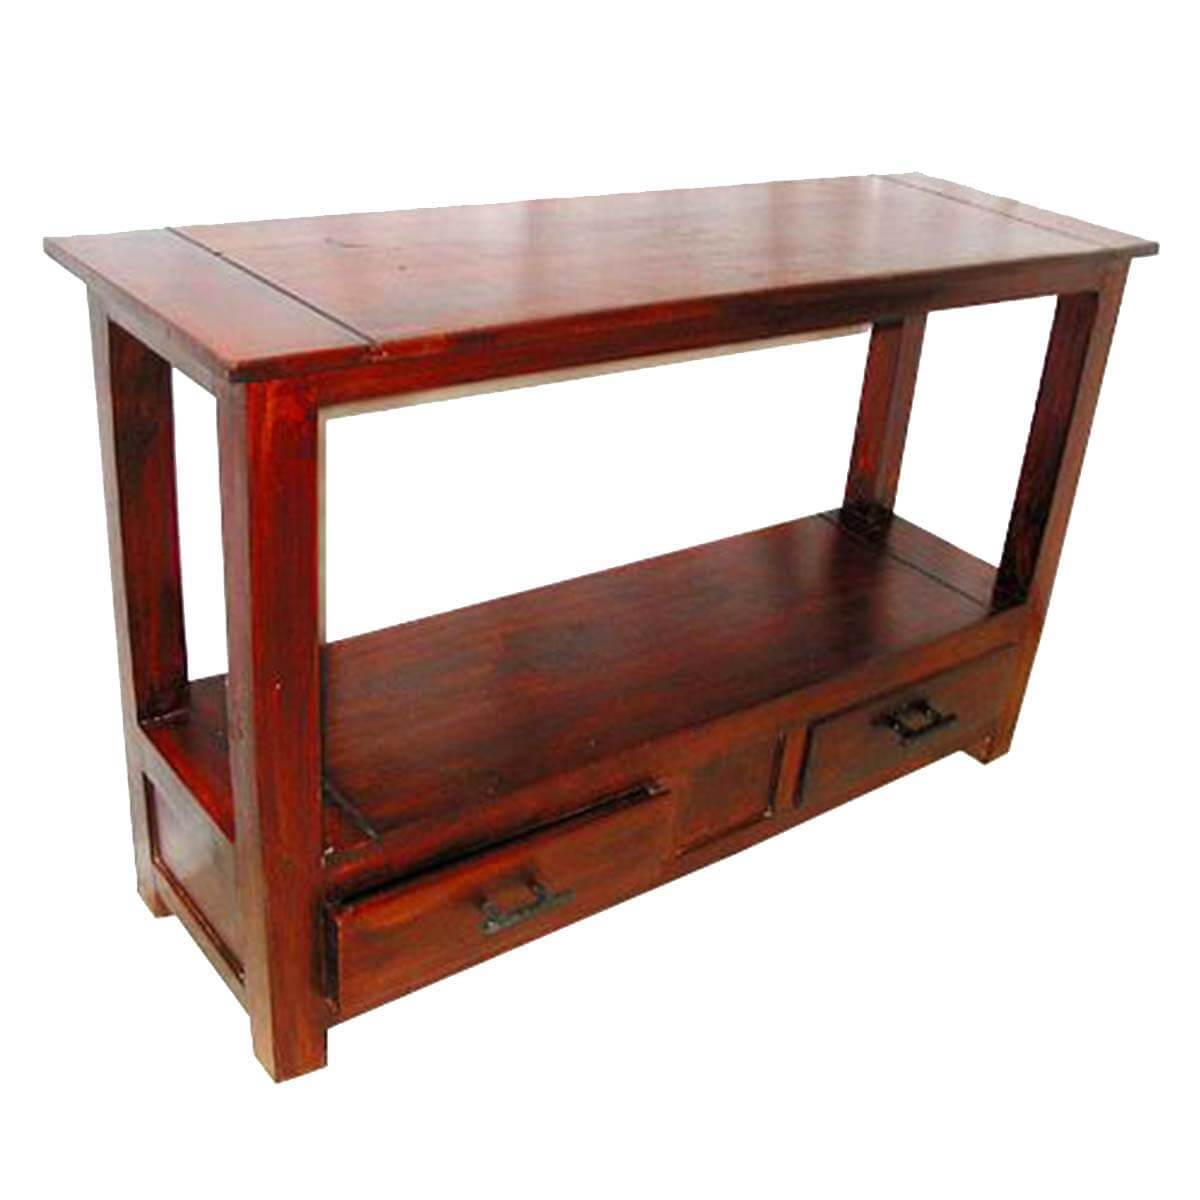 Solid wood console hall entry foyer table furniture Wooden hallway furniture